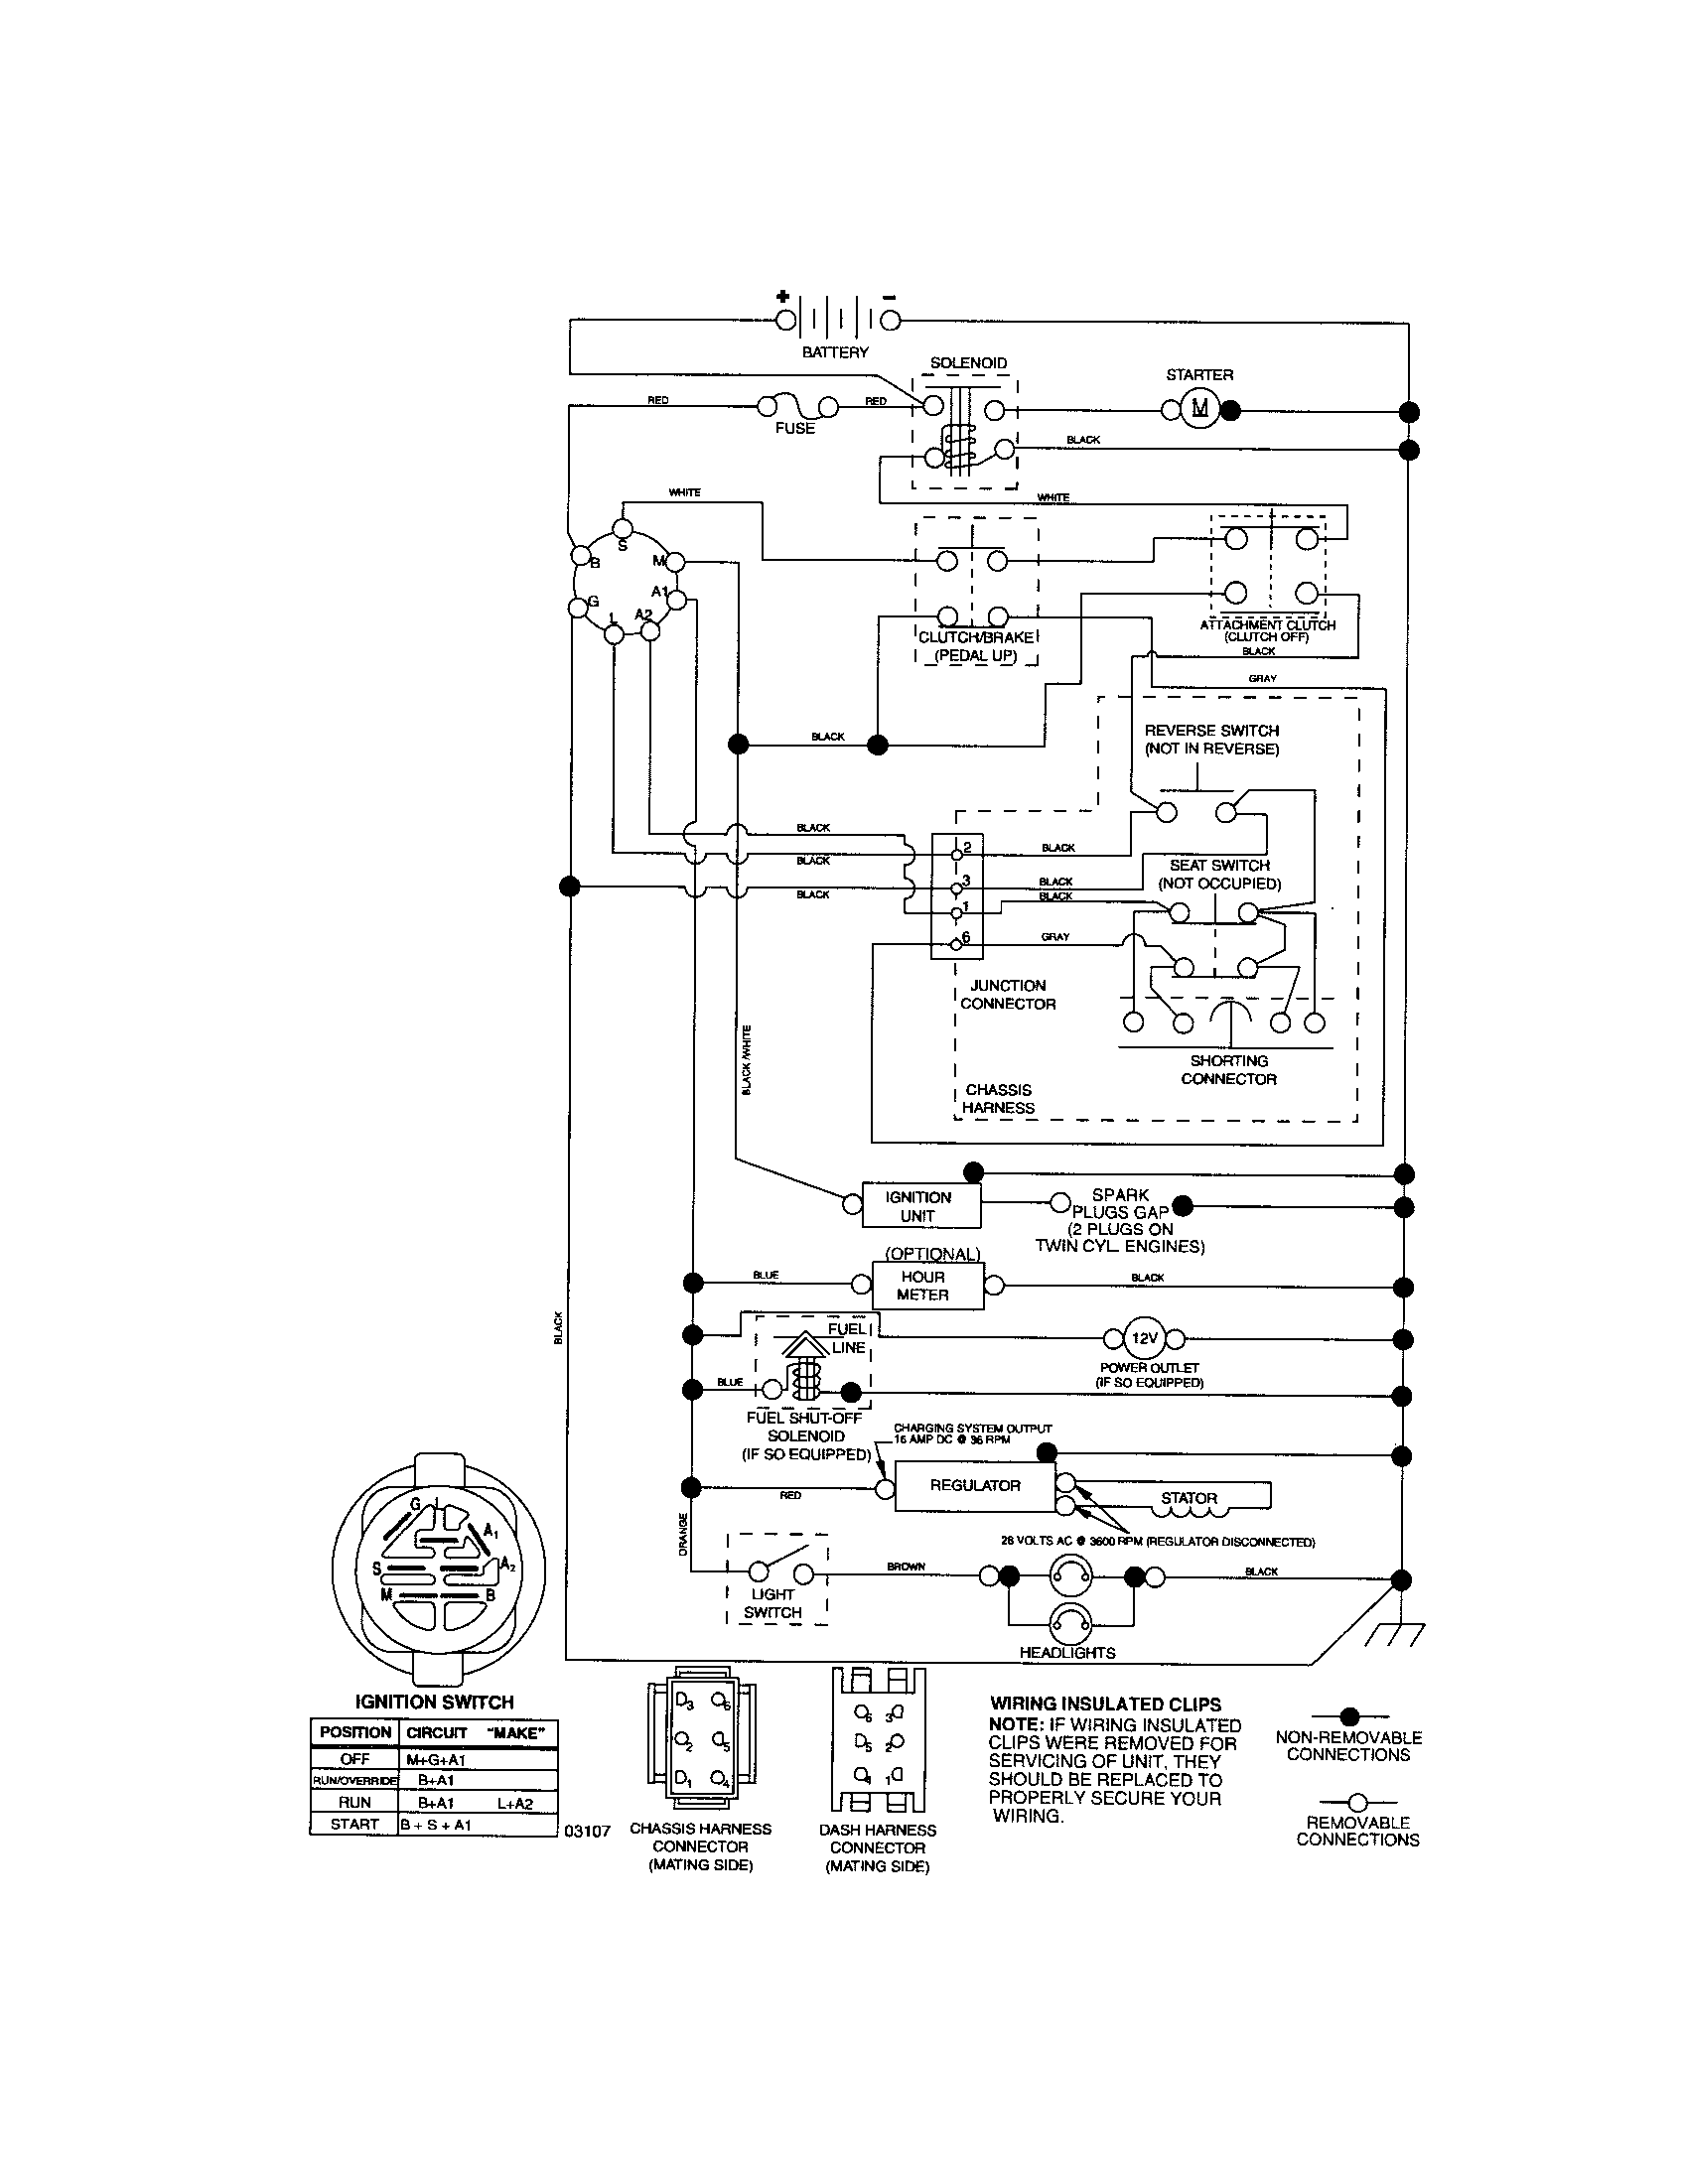 6af5f1447fd13c8443376822ddc1e105 lawn tractor wiring diagram lawn download wirning diagrams Weed Eater Replacement Parts at soozxer.org